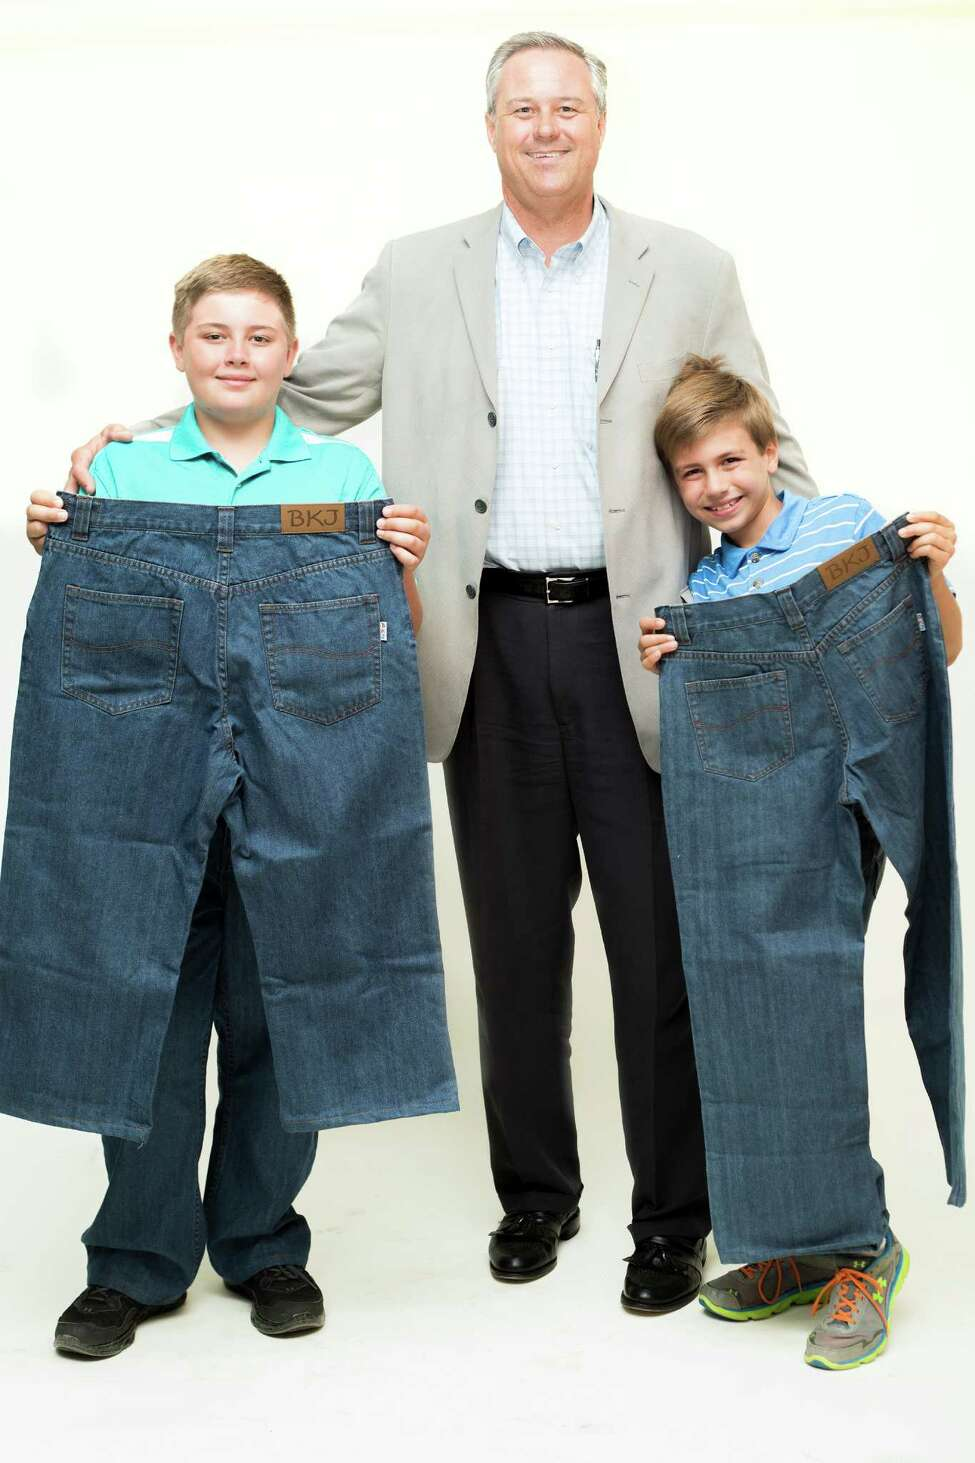 Alec, 11, left, and his brother, Kyle, 9, right, stand with their father and founder of Big Kidz Jeanz, Steve, as they display Big Kidz Jeans on Thursday, June 6, 2014 in Albany, N.Y. Steve Frazee is the founder of Big Kidz Jeanz, a company he started because he had a hard time finding pants to fit his